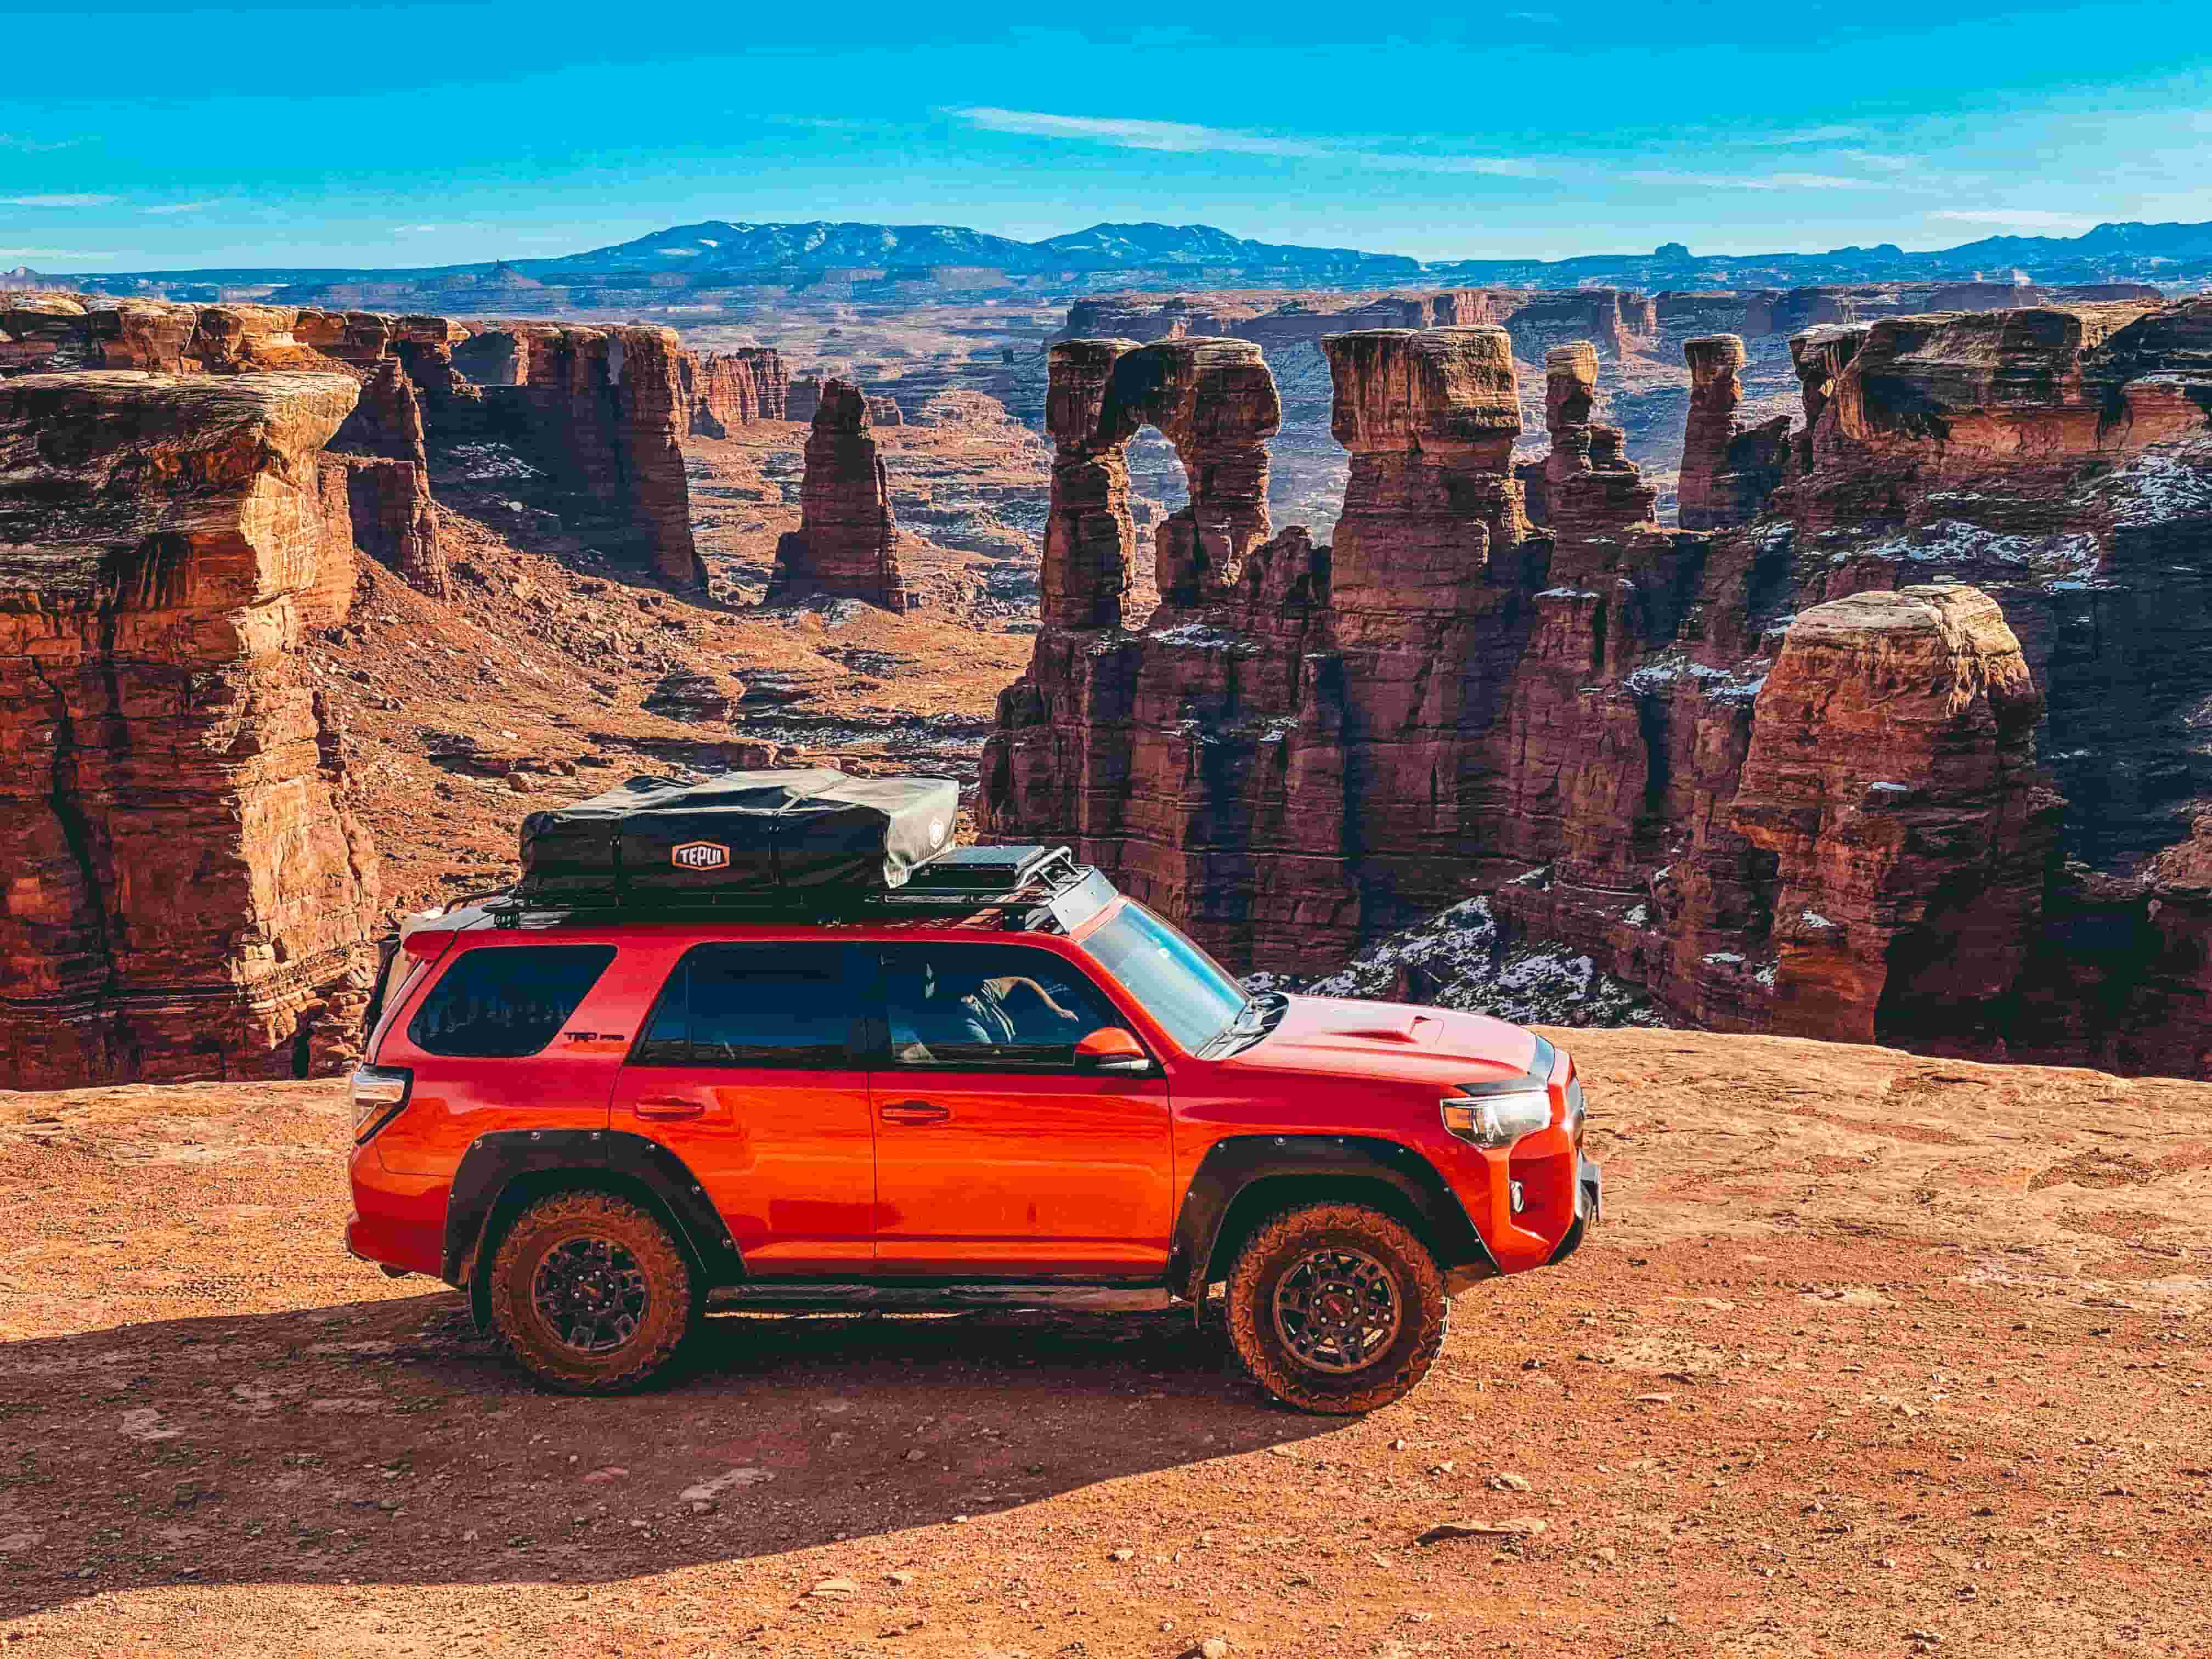 Driving the White Rim Trail in Utah